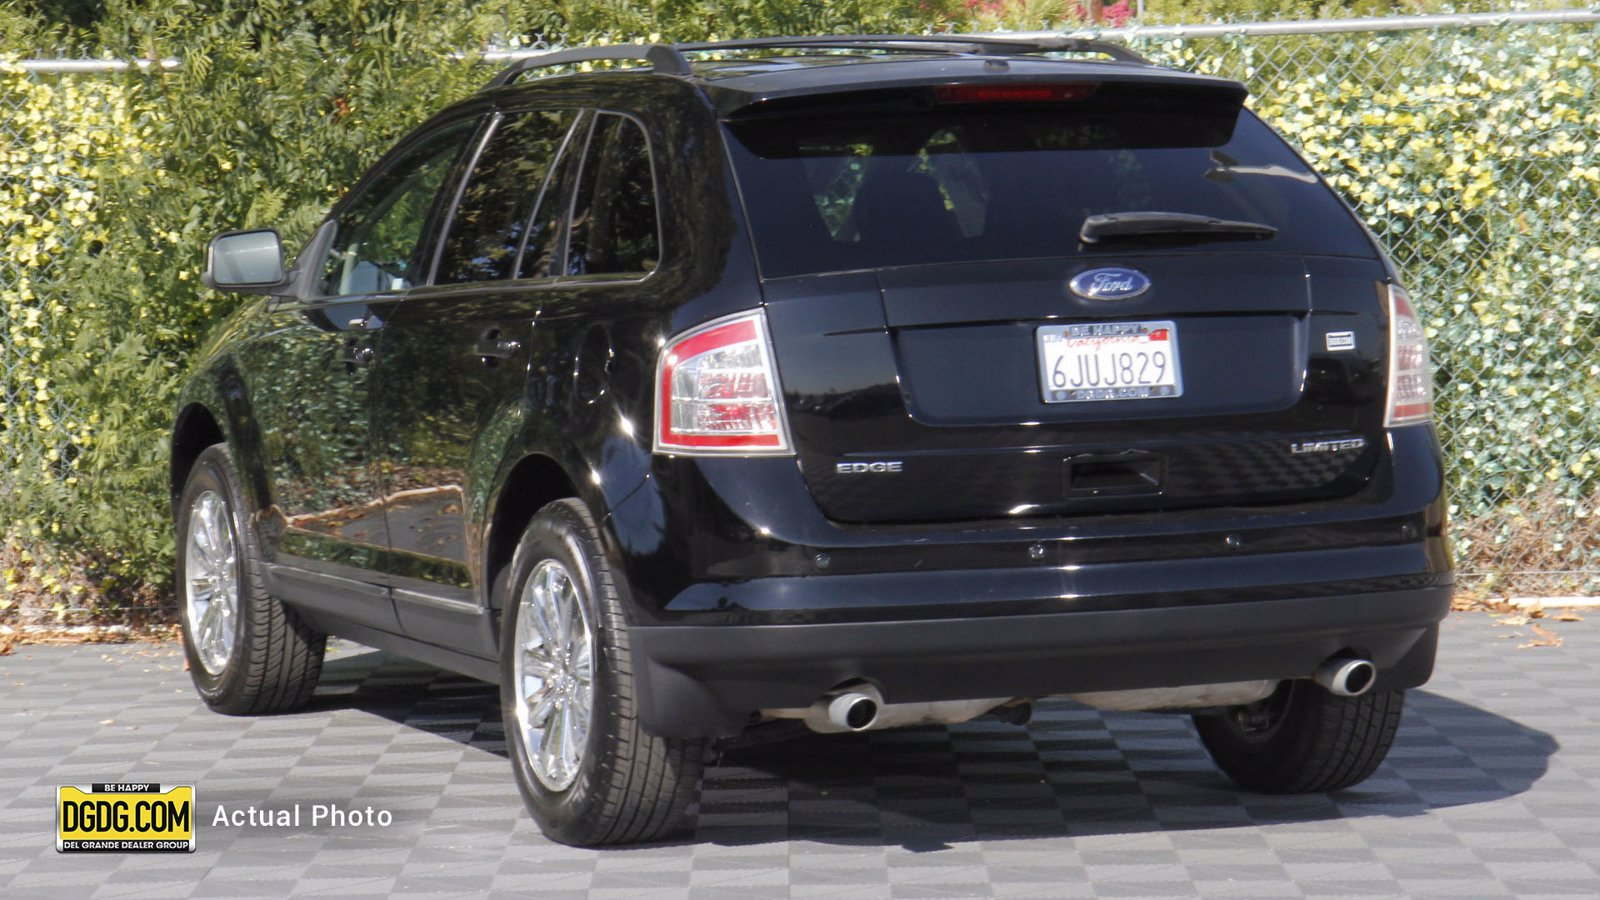 Pre-Owned 2008 Ford Edge Limited